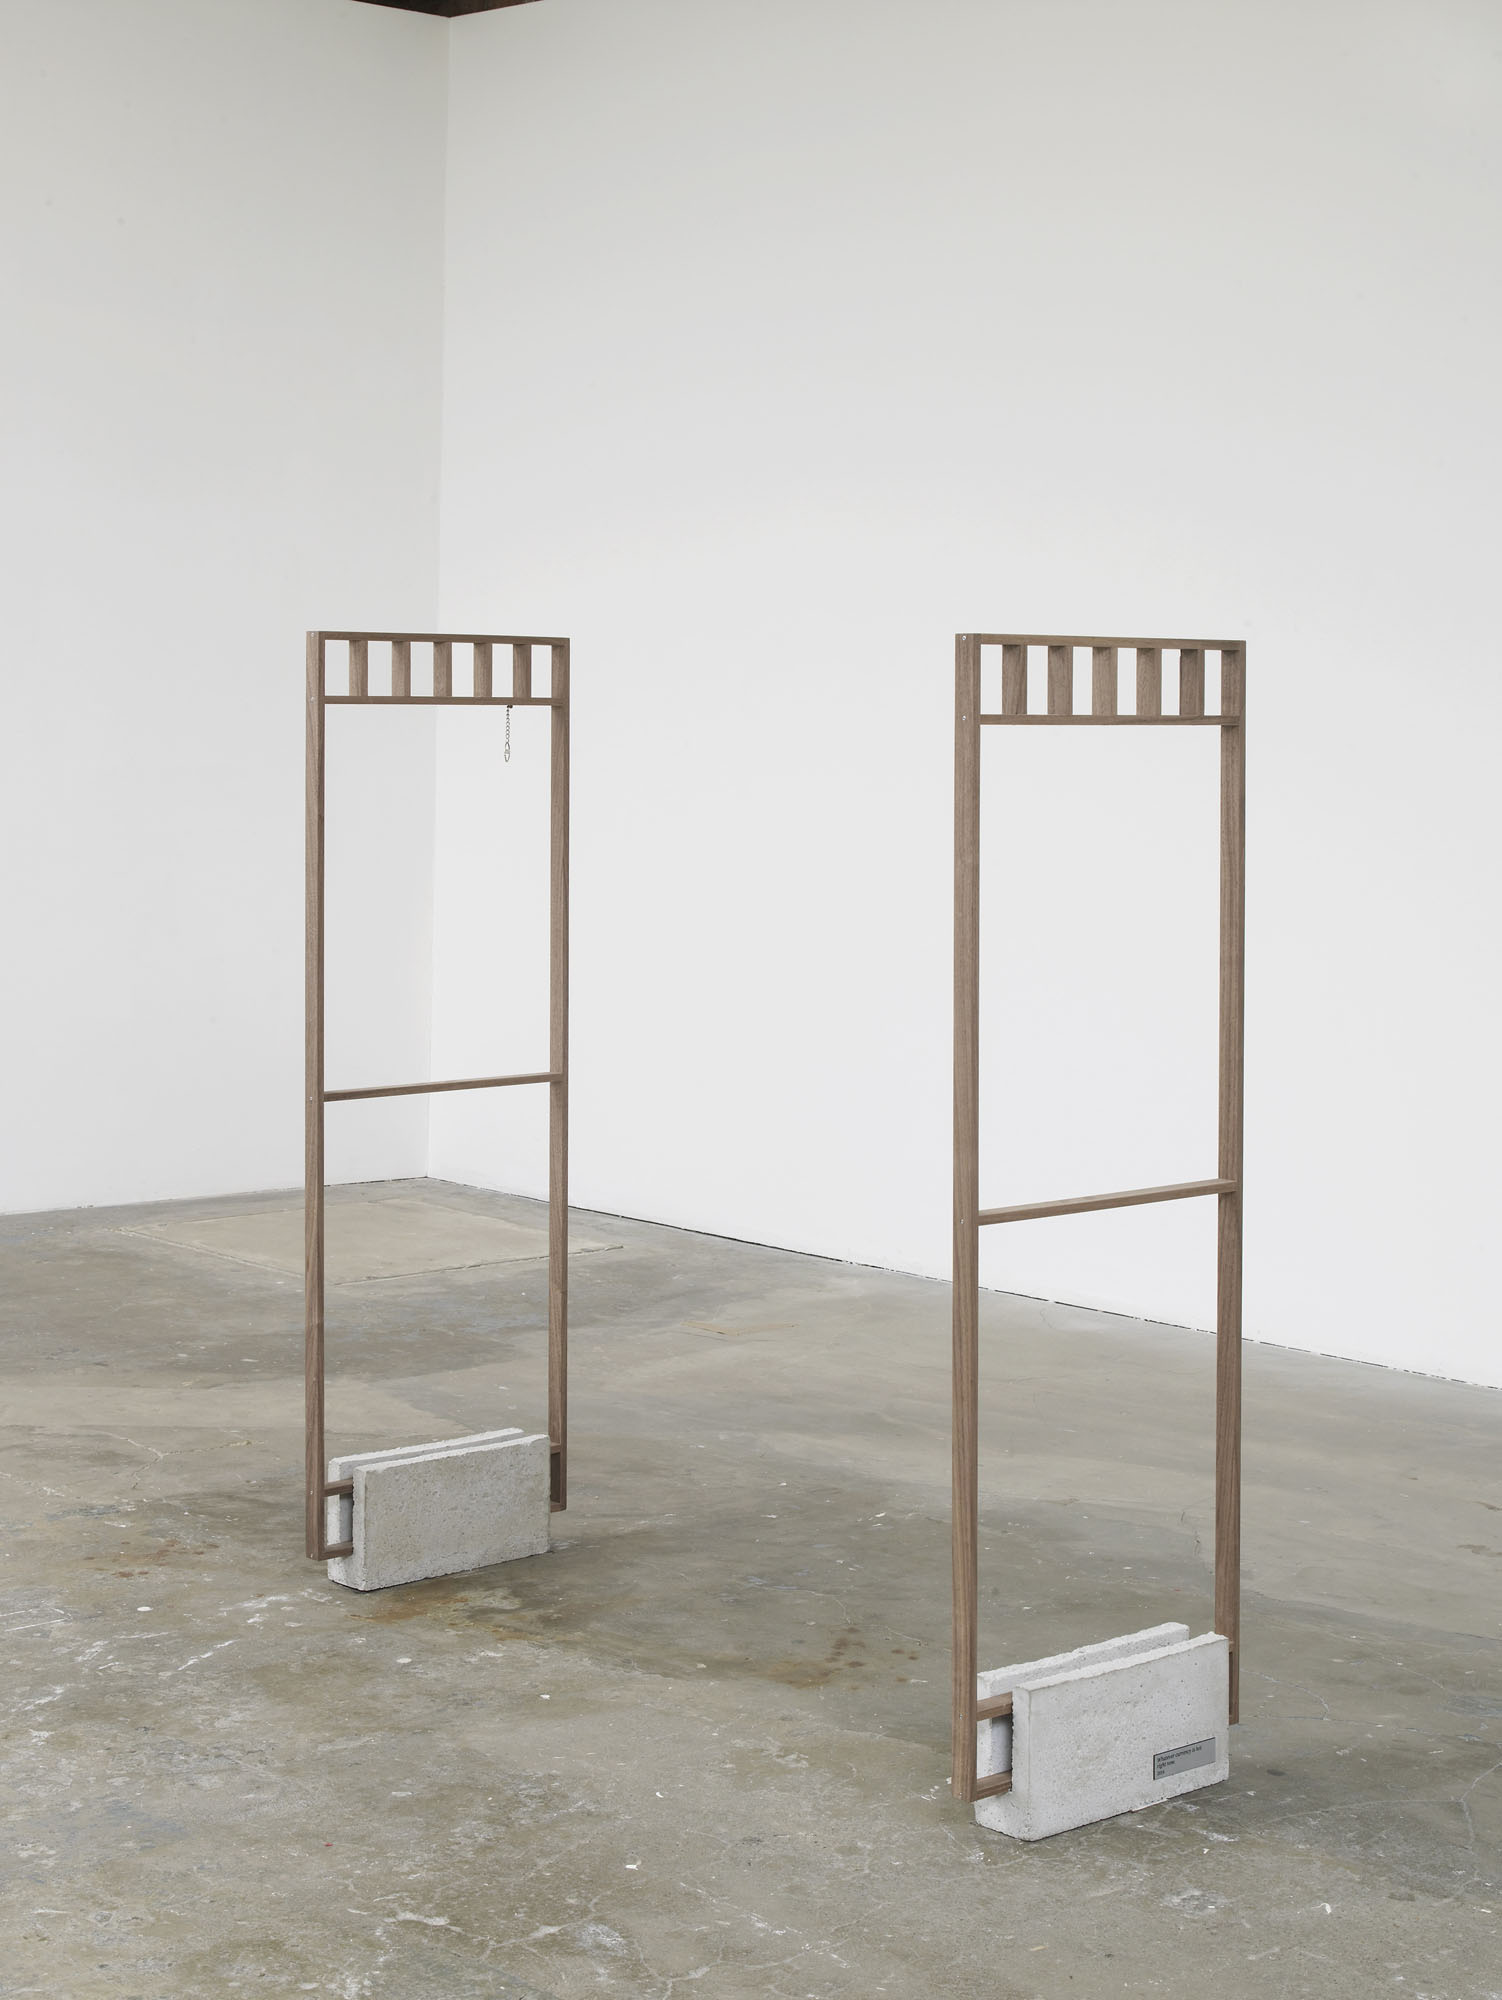 Whatever currency is hot right now, 2016